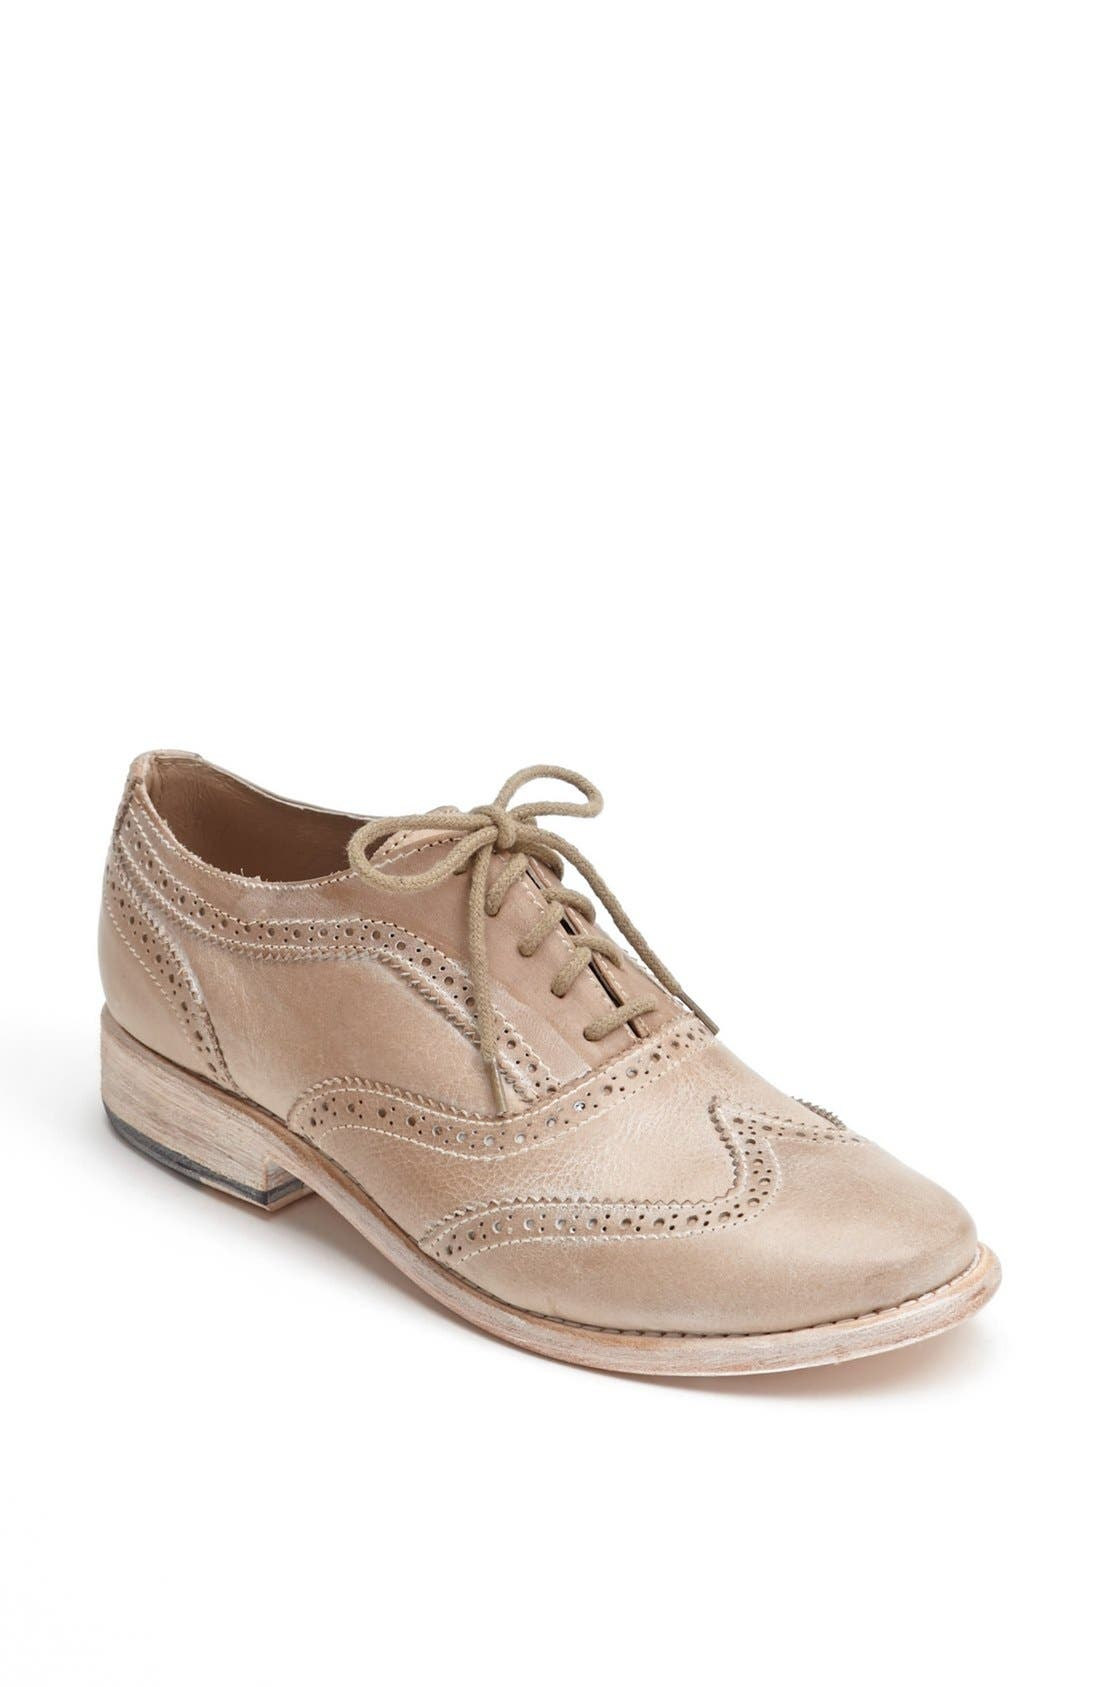 Alternate Image 1 Selected - Steve Madden 'Repete' Wingtip Oxford